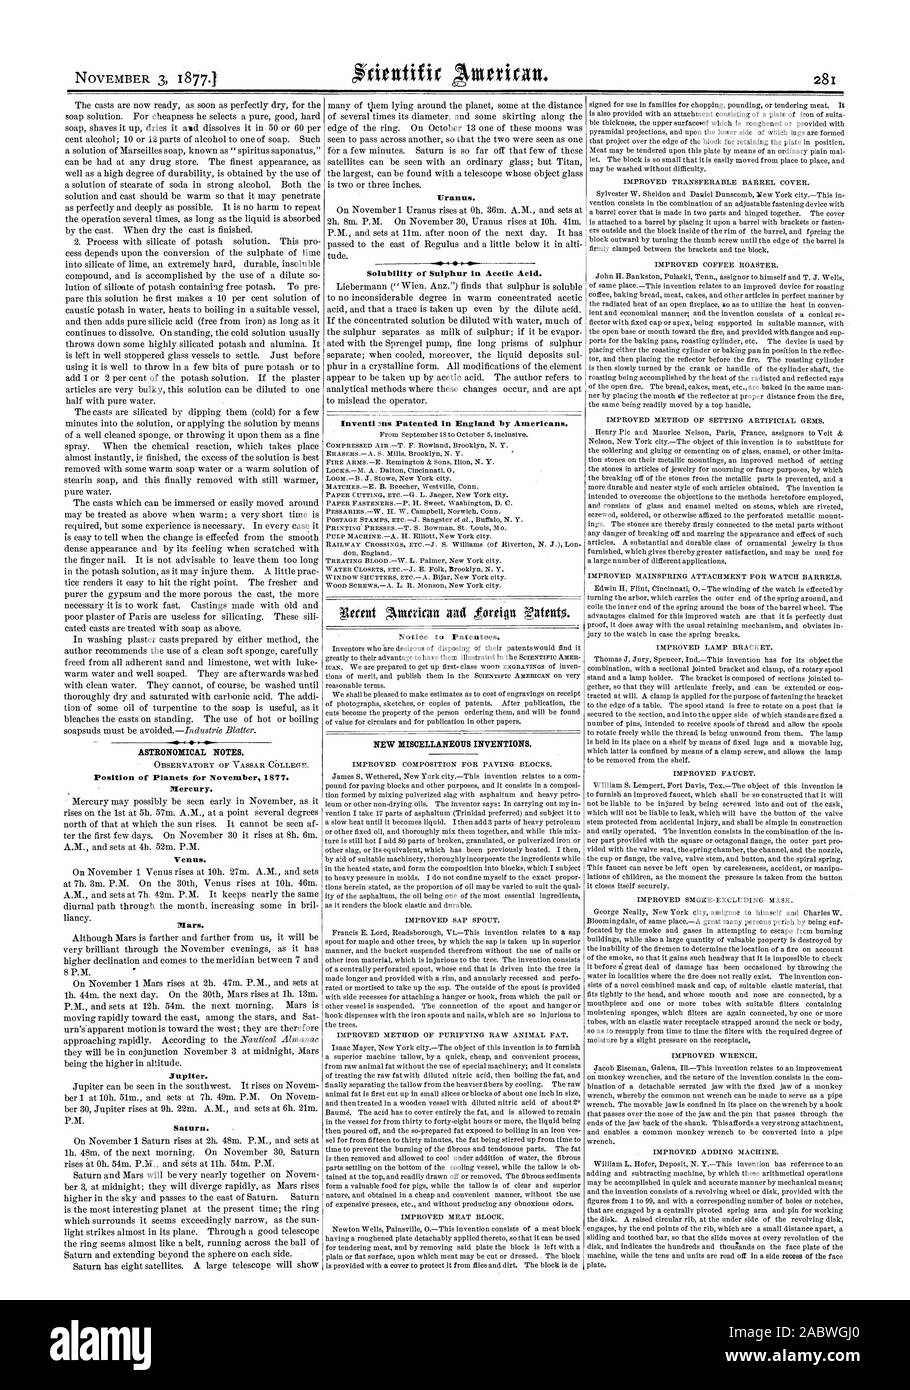 ASTRONOMICAL NOTES. Position of Planets for November 1877. Mercury. Venus. Mars. Jupiter. Saturn. Uranus. v. 4  Solubility of Sulphur in Acetic Acid. Inventi3ns Patented in England by Americans. Notice to Patentees. NEW MISCELLANEOUS INVENTIONS., scientific american, 1877-11-03 Stock Photo